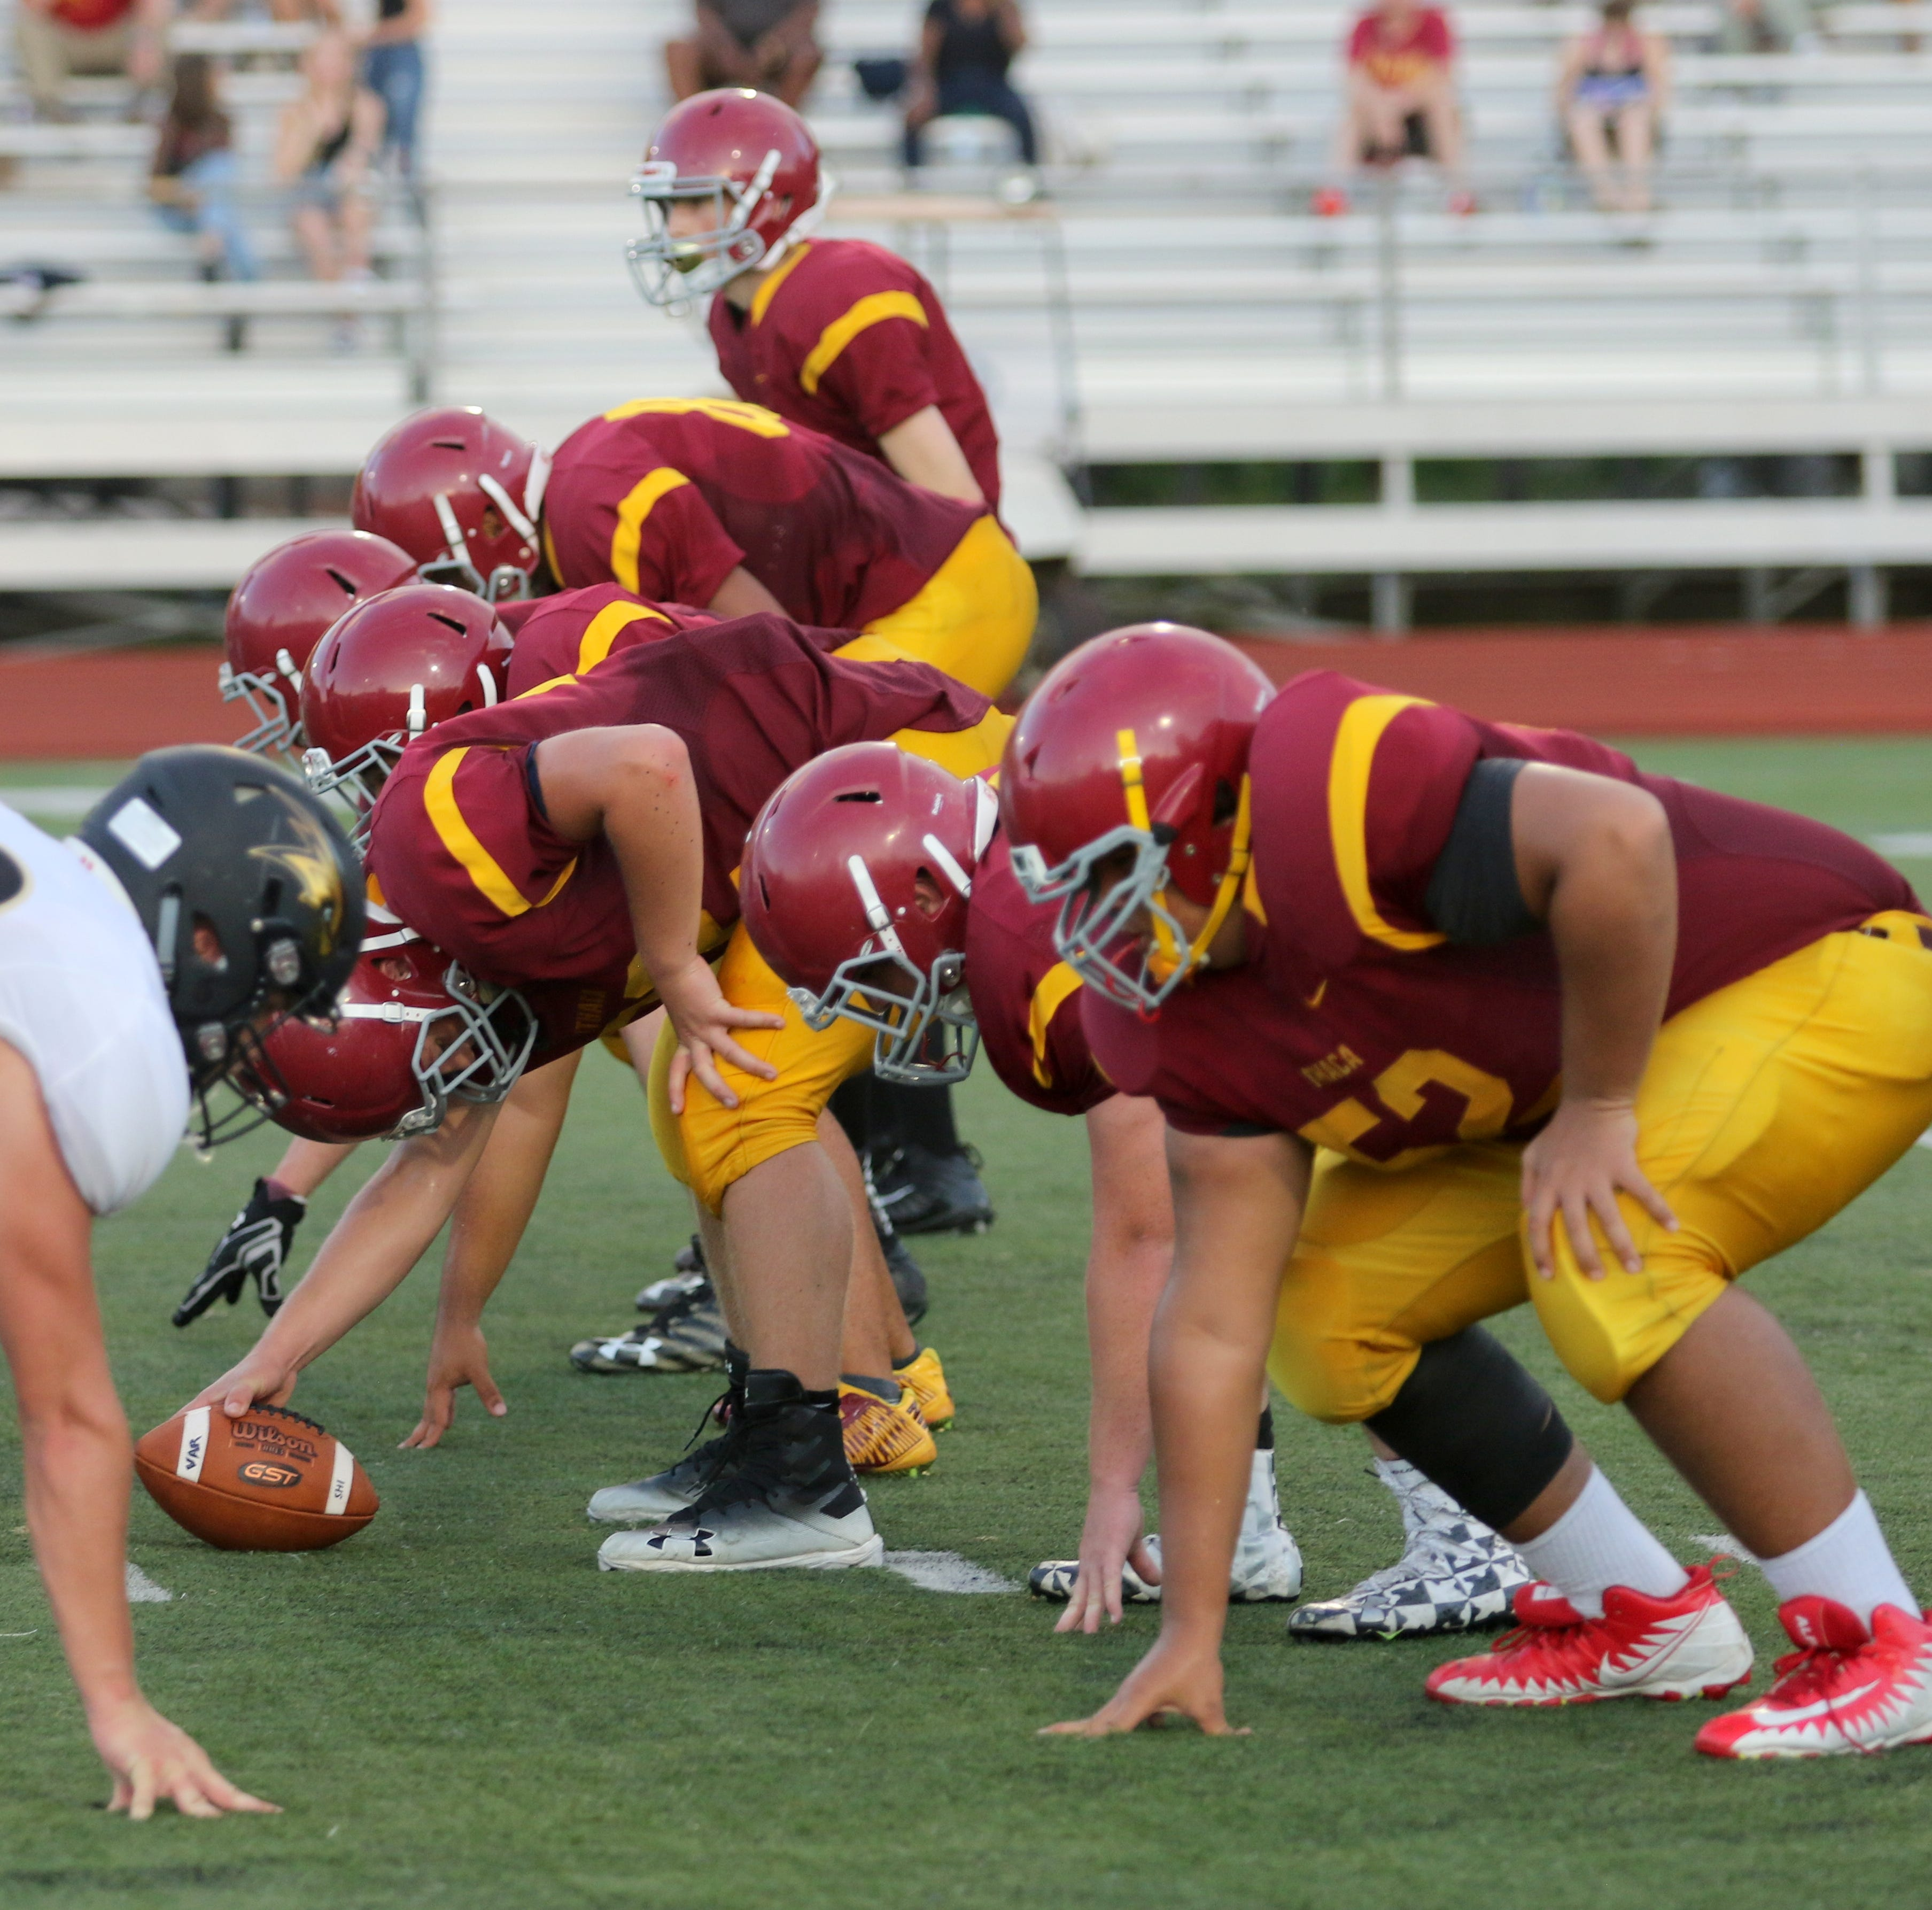 FOOTBALL RANKINGS: Who are top high school teams in Section 4?